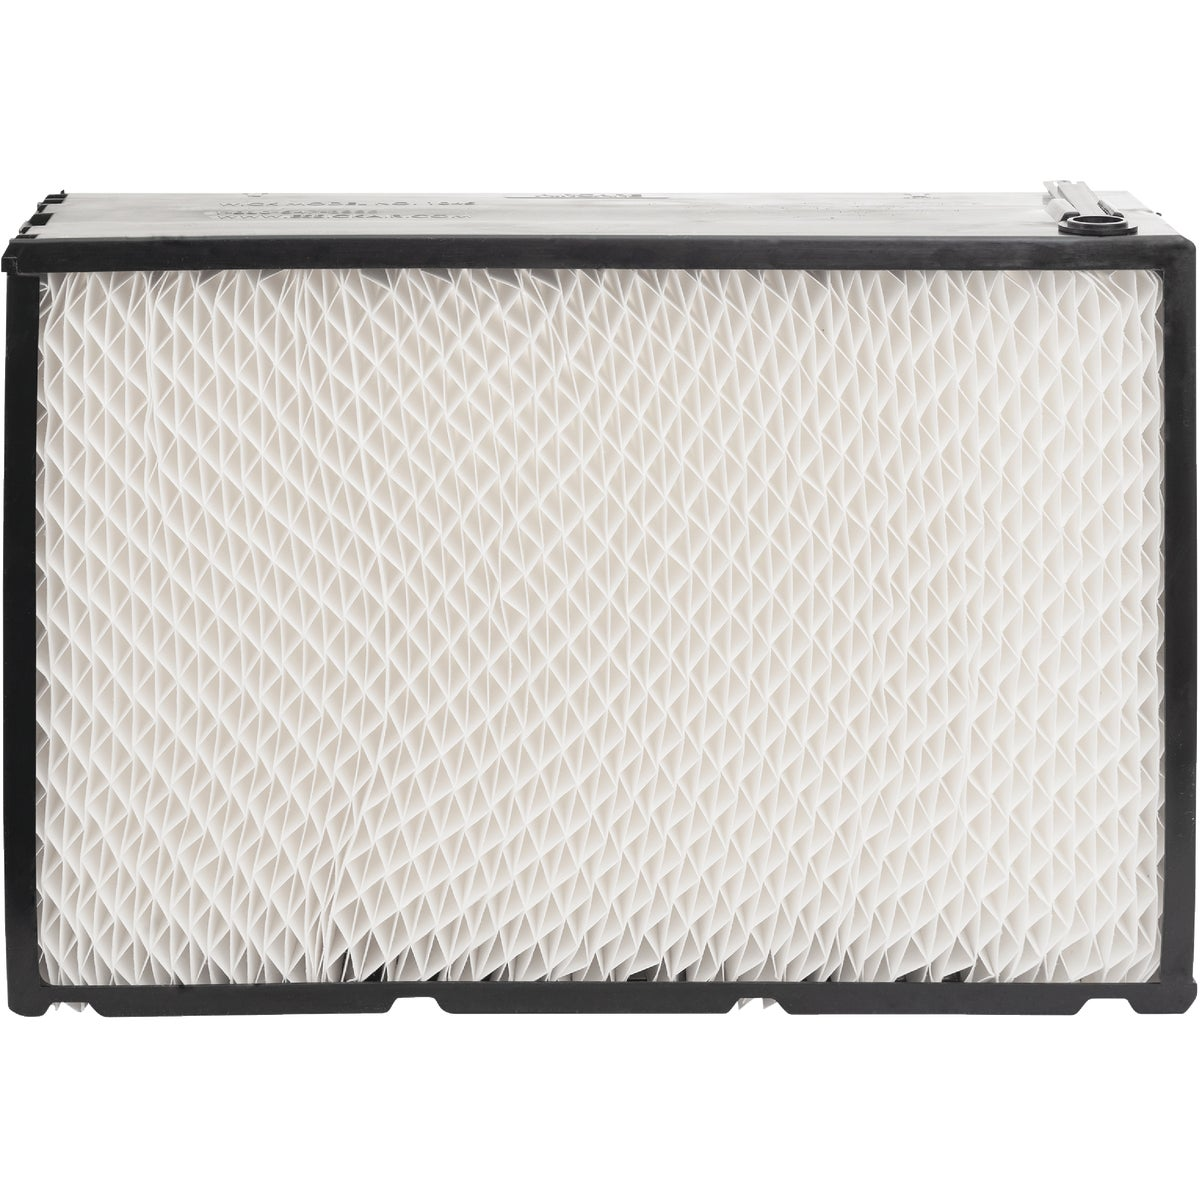 HUMIDIFIER WICK FILTER - 1045 by Essick Air Products